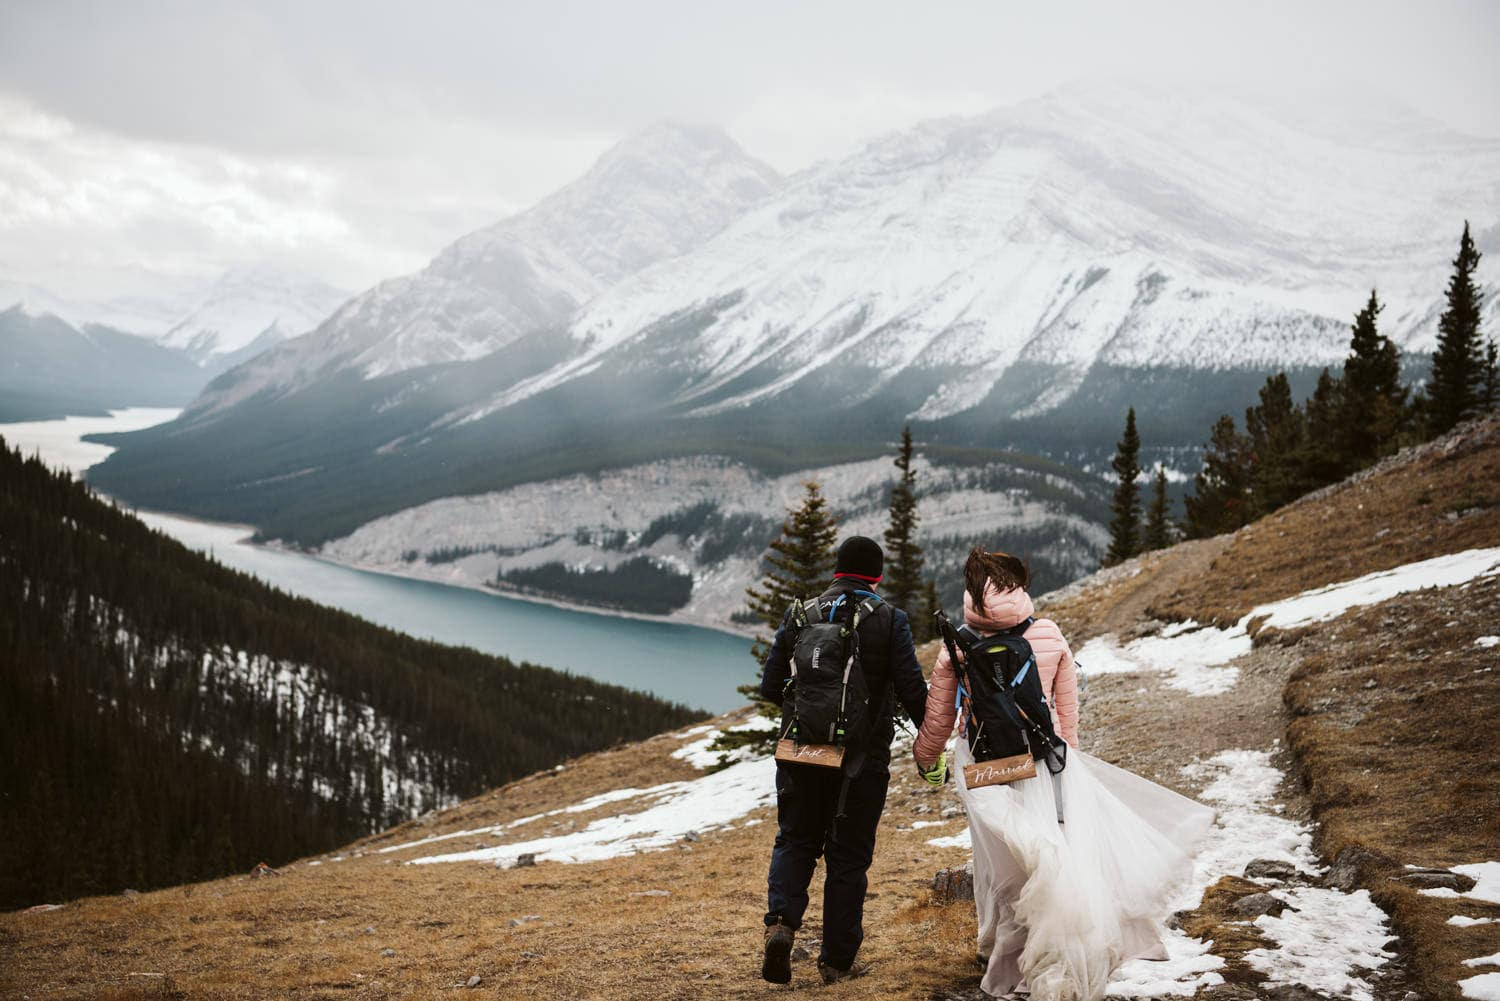 couple on mountain top over looking mountains and alpine lake